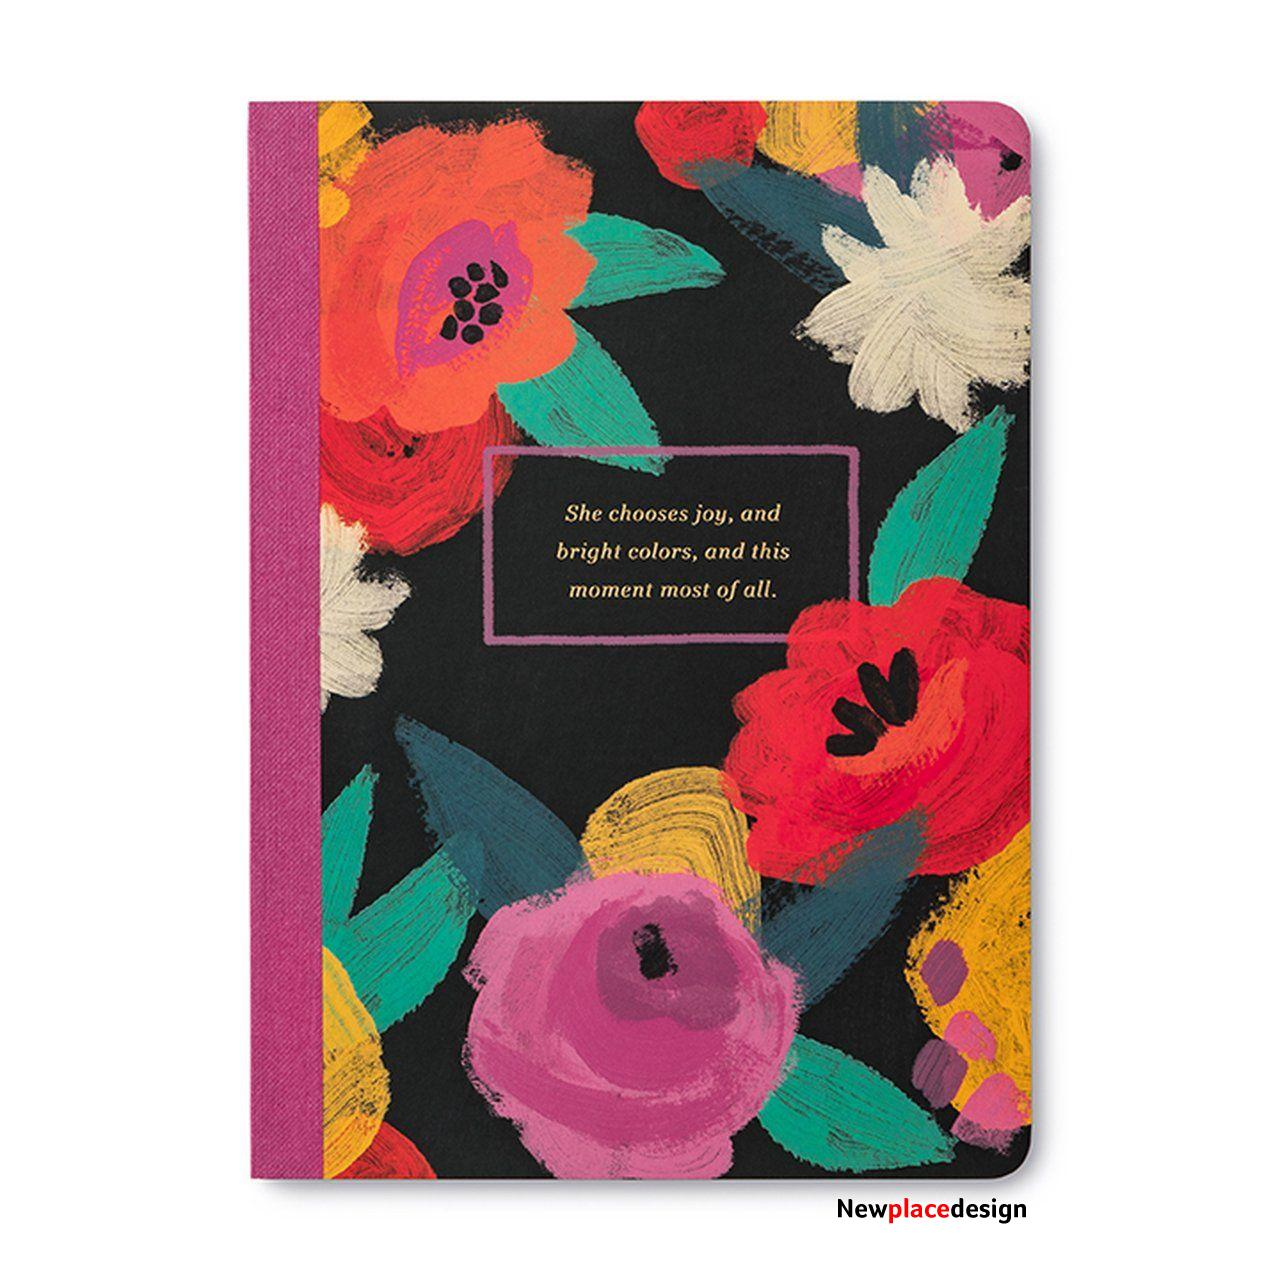 Her Words Composition Notebooks - She Doesn't Know How The Story Ends